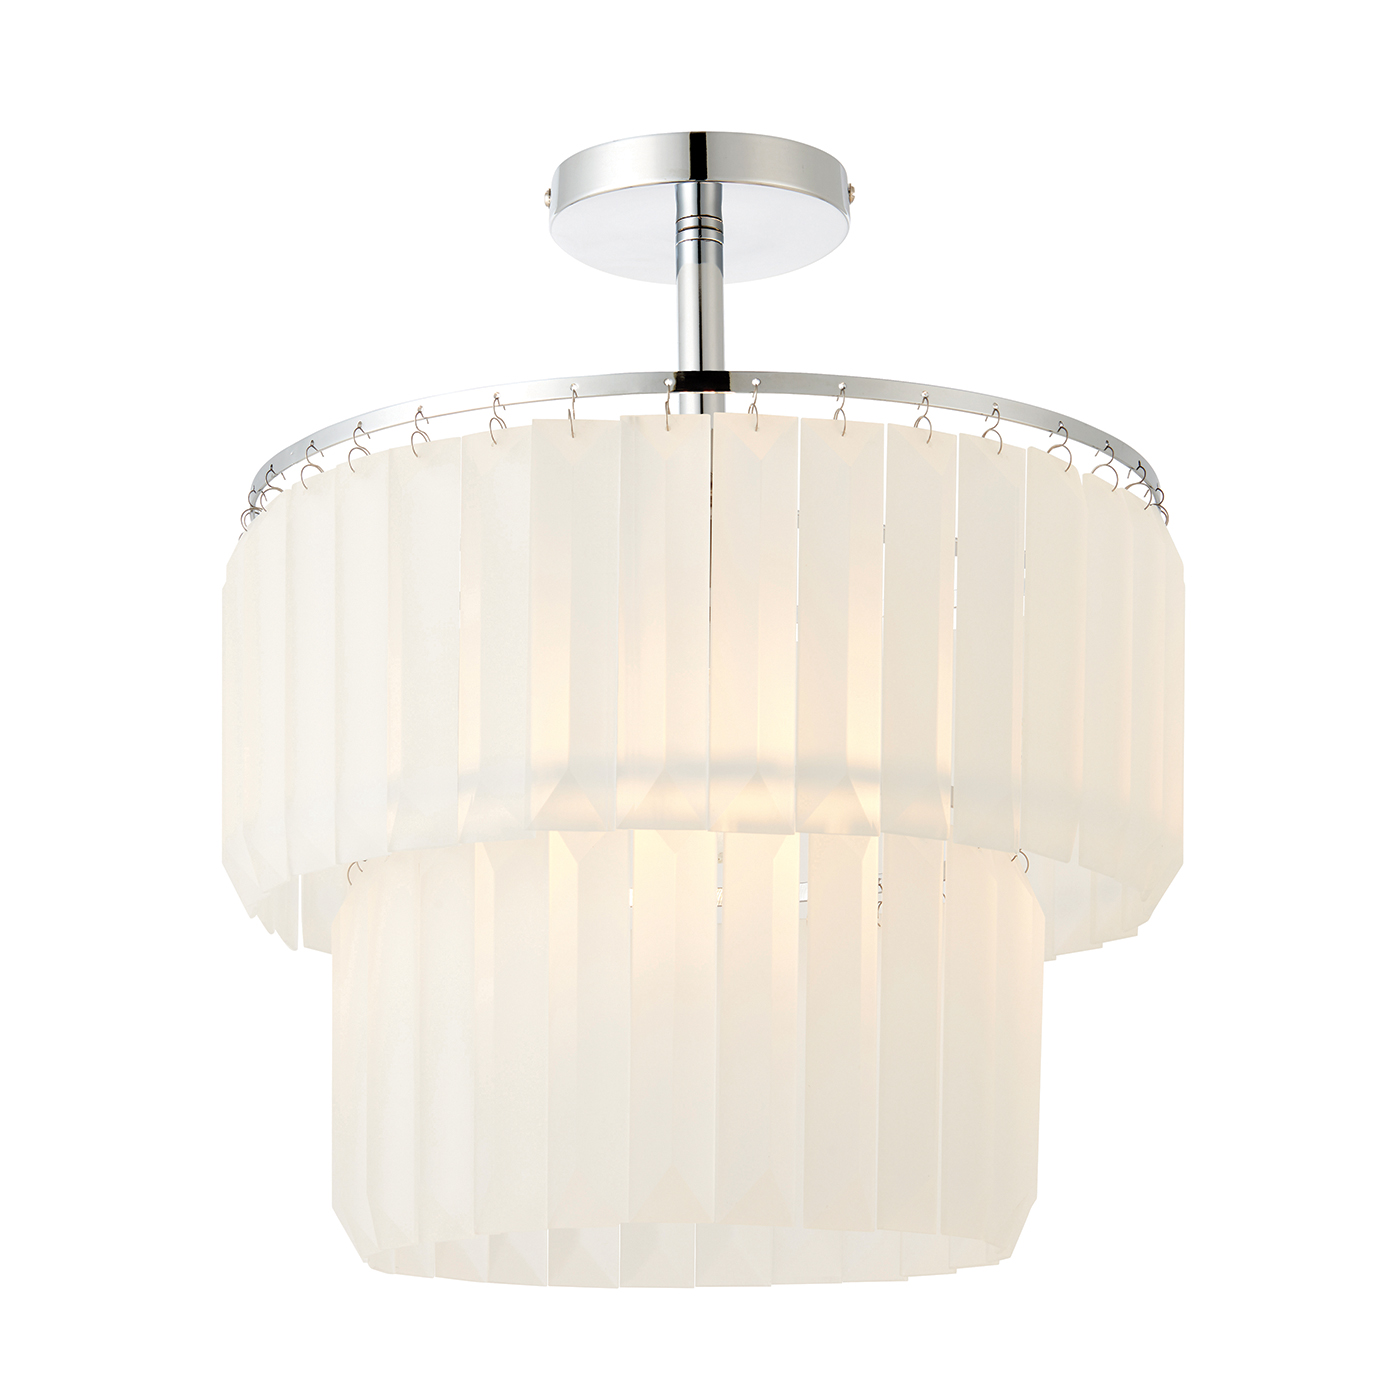 Endon 70668 Selina Ceiling Light 60W CP